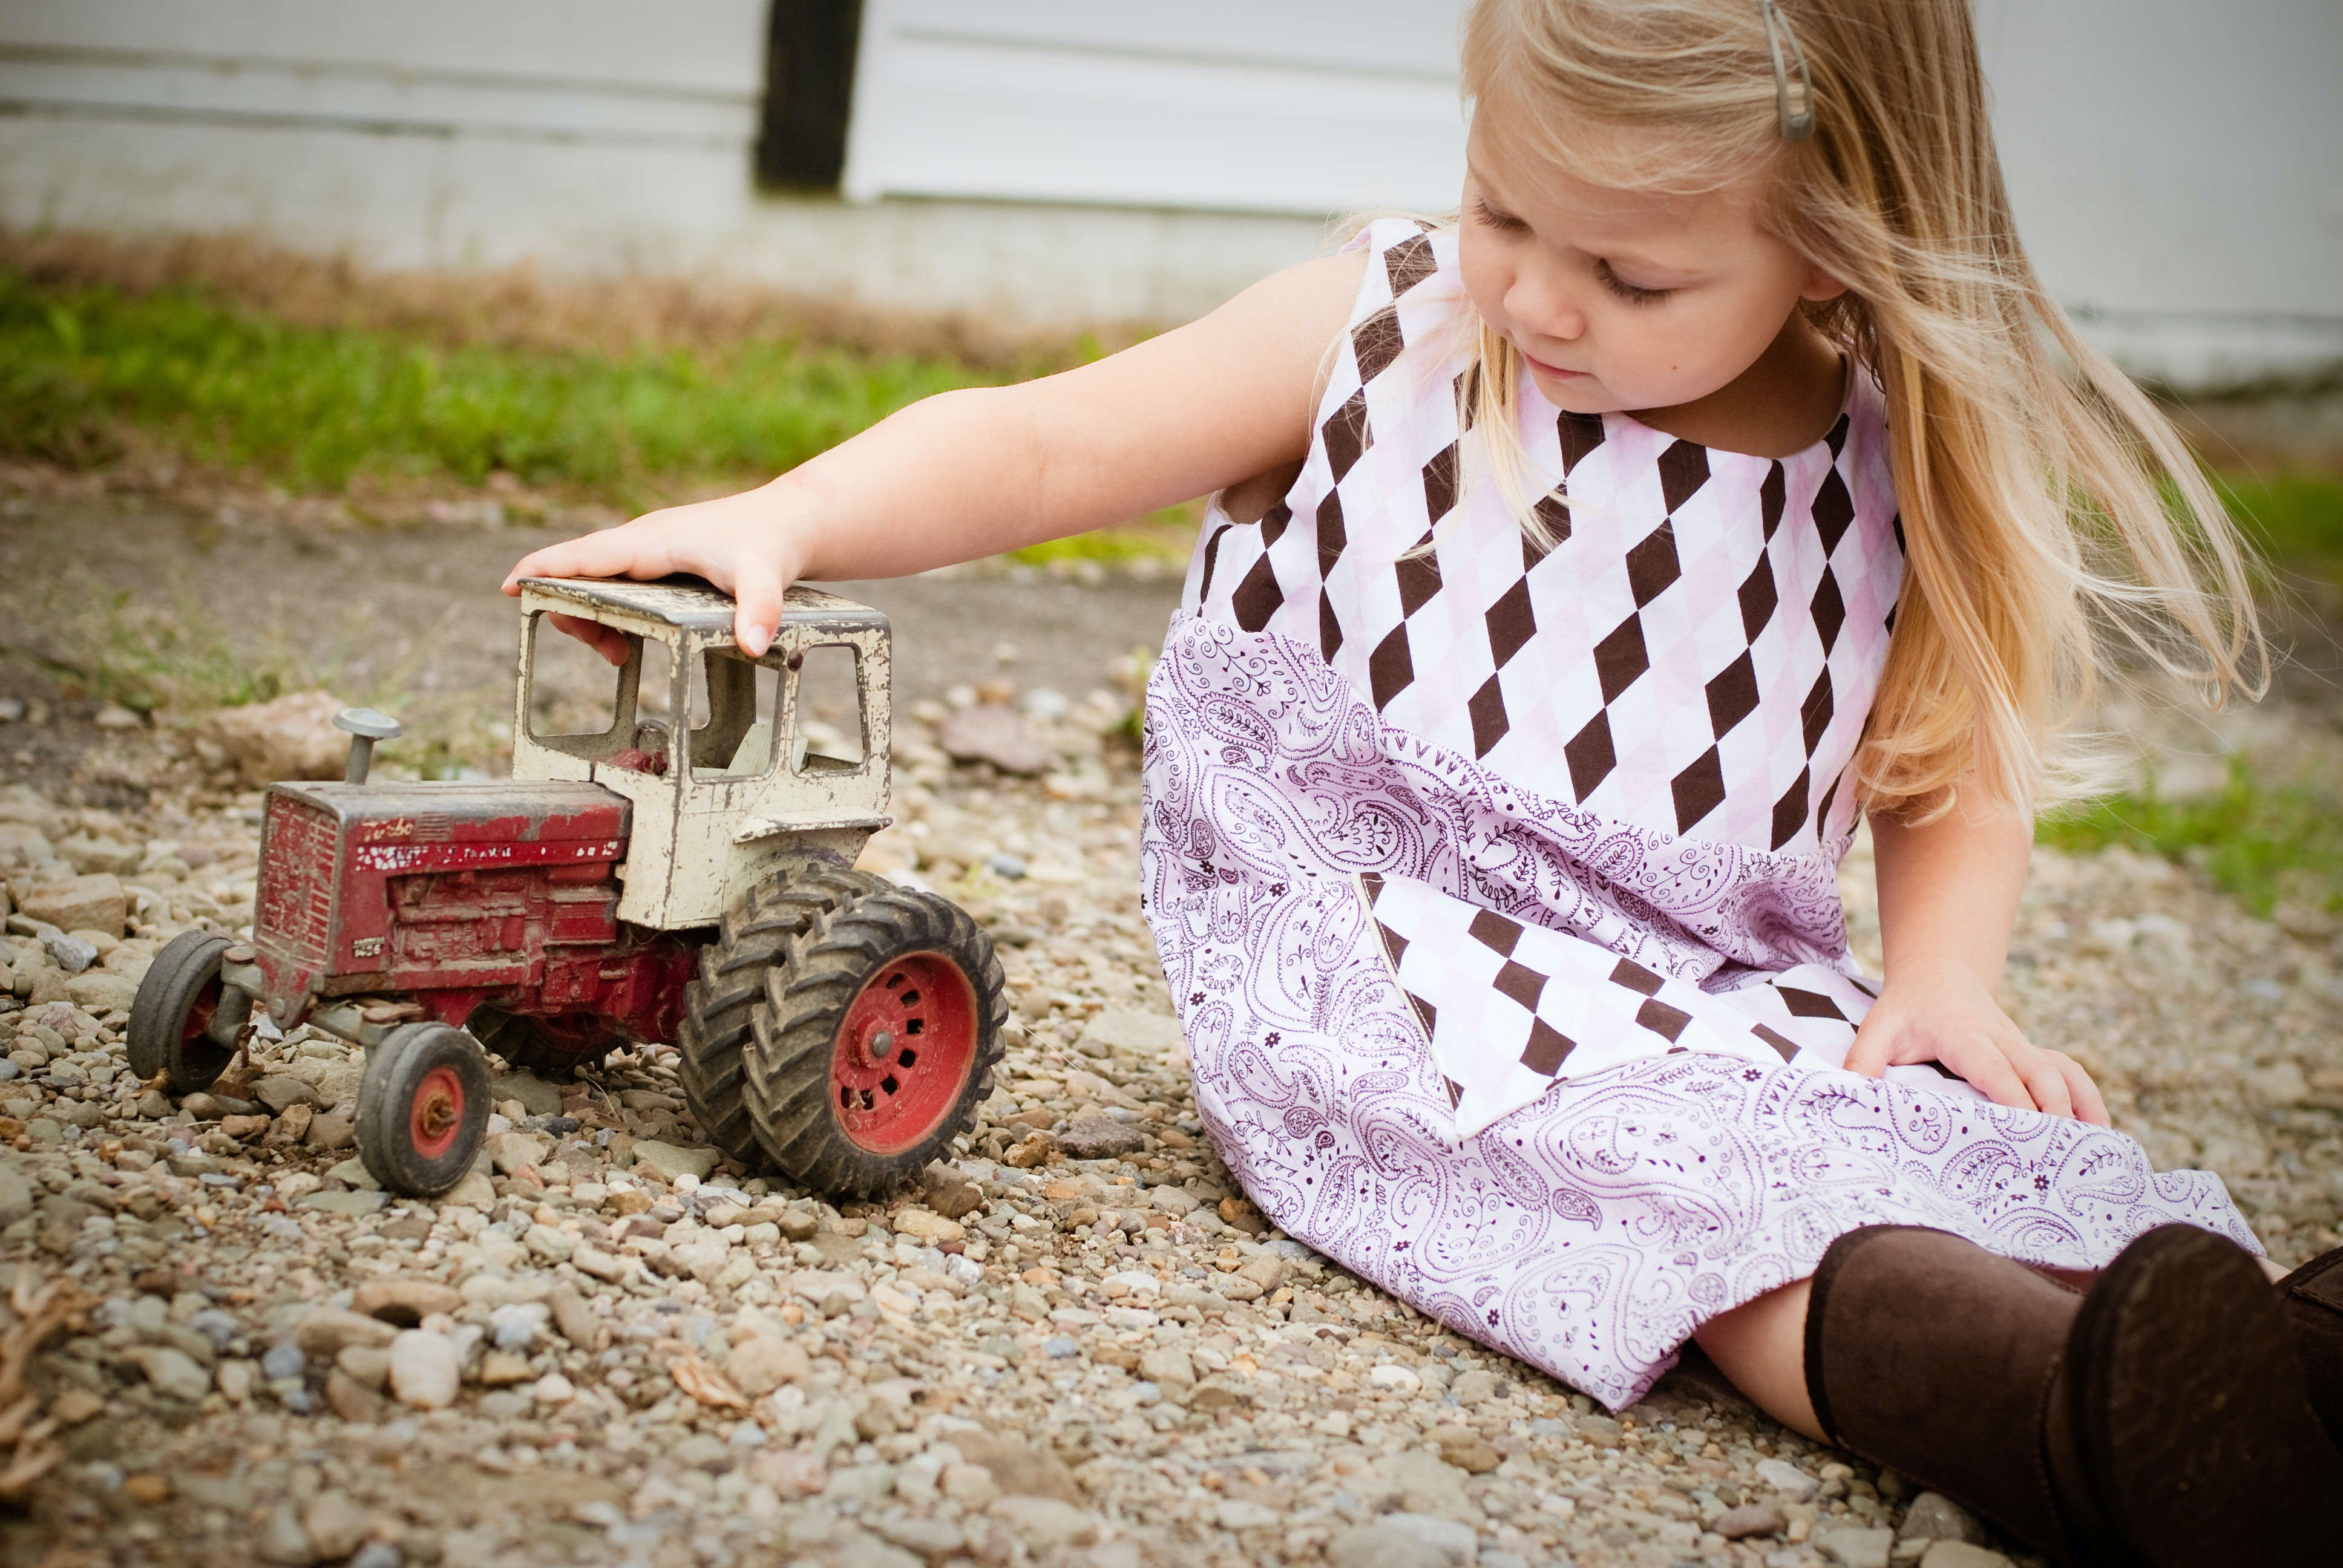 Free stock photo of person, girl, grass, tractor